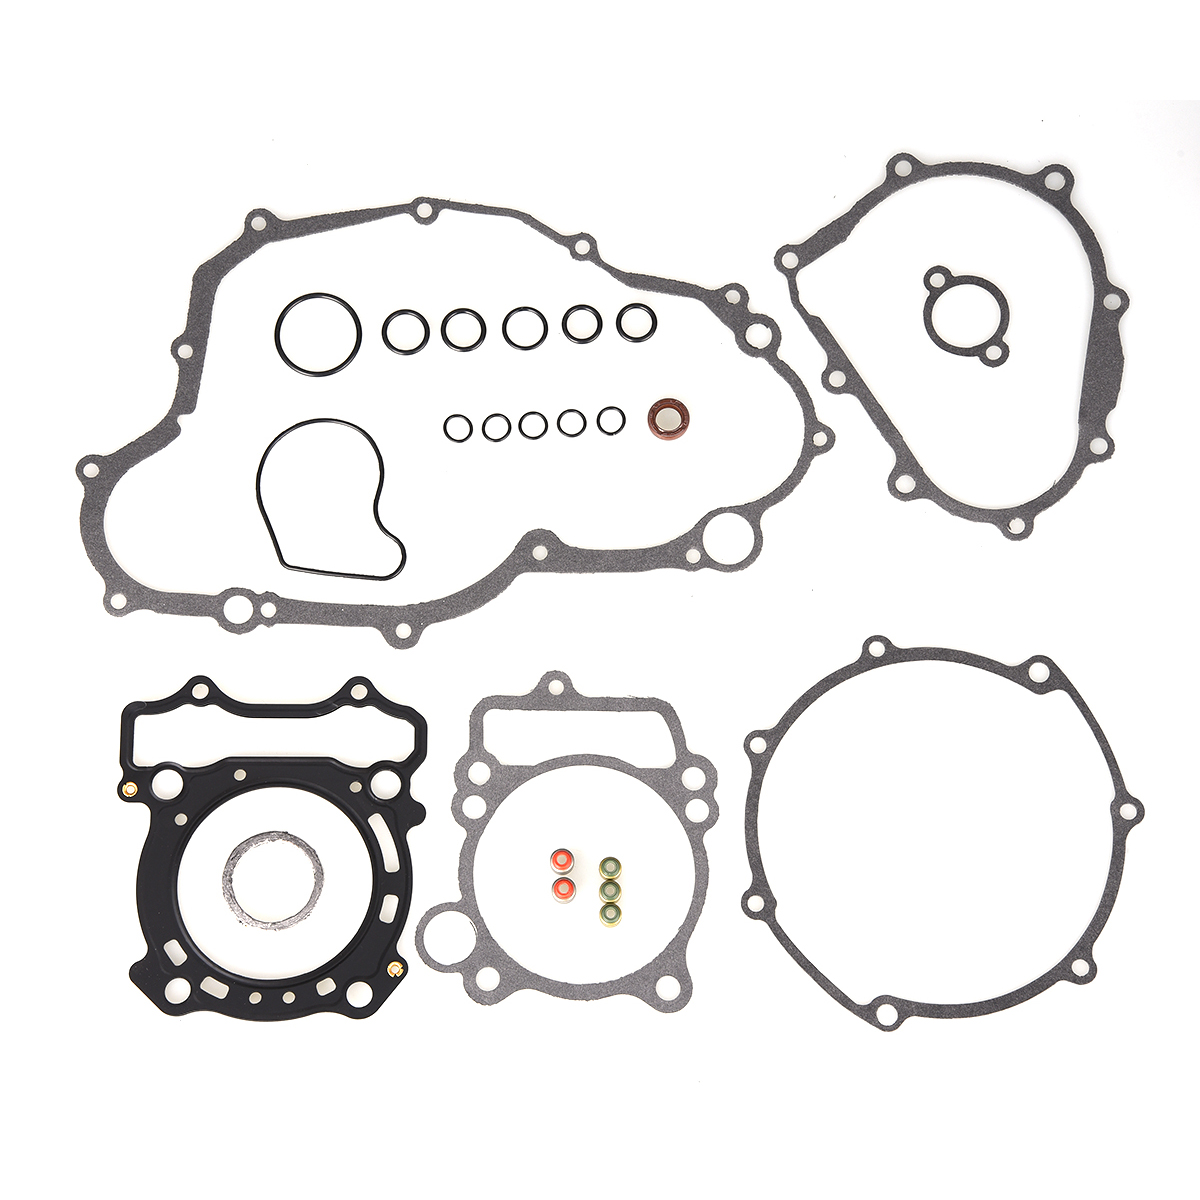 plete gasket kit top bottom end engine set for yamaha yz250f 2001 DRZ400S Engine Diagram package included 1 x plete set of gasket kit as picture shows